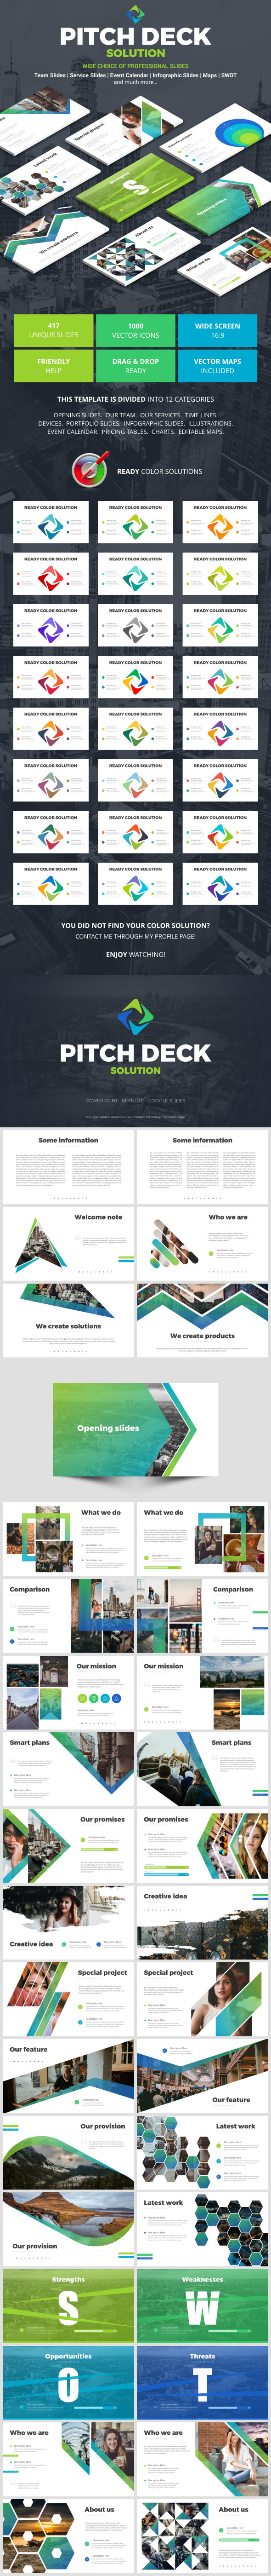 Pitch Deck Solution - Pitch Deck PowerPoint Templates